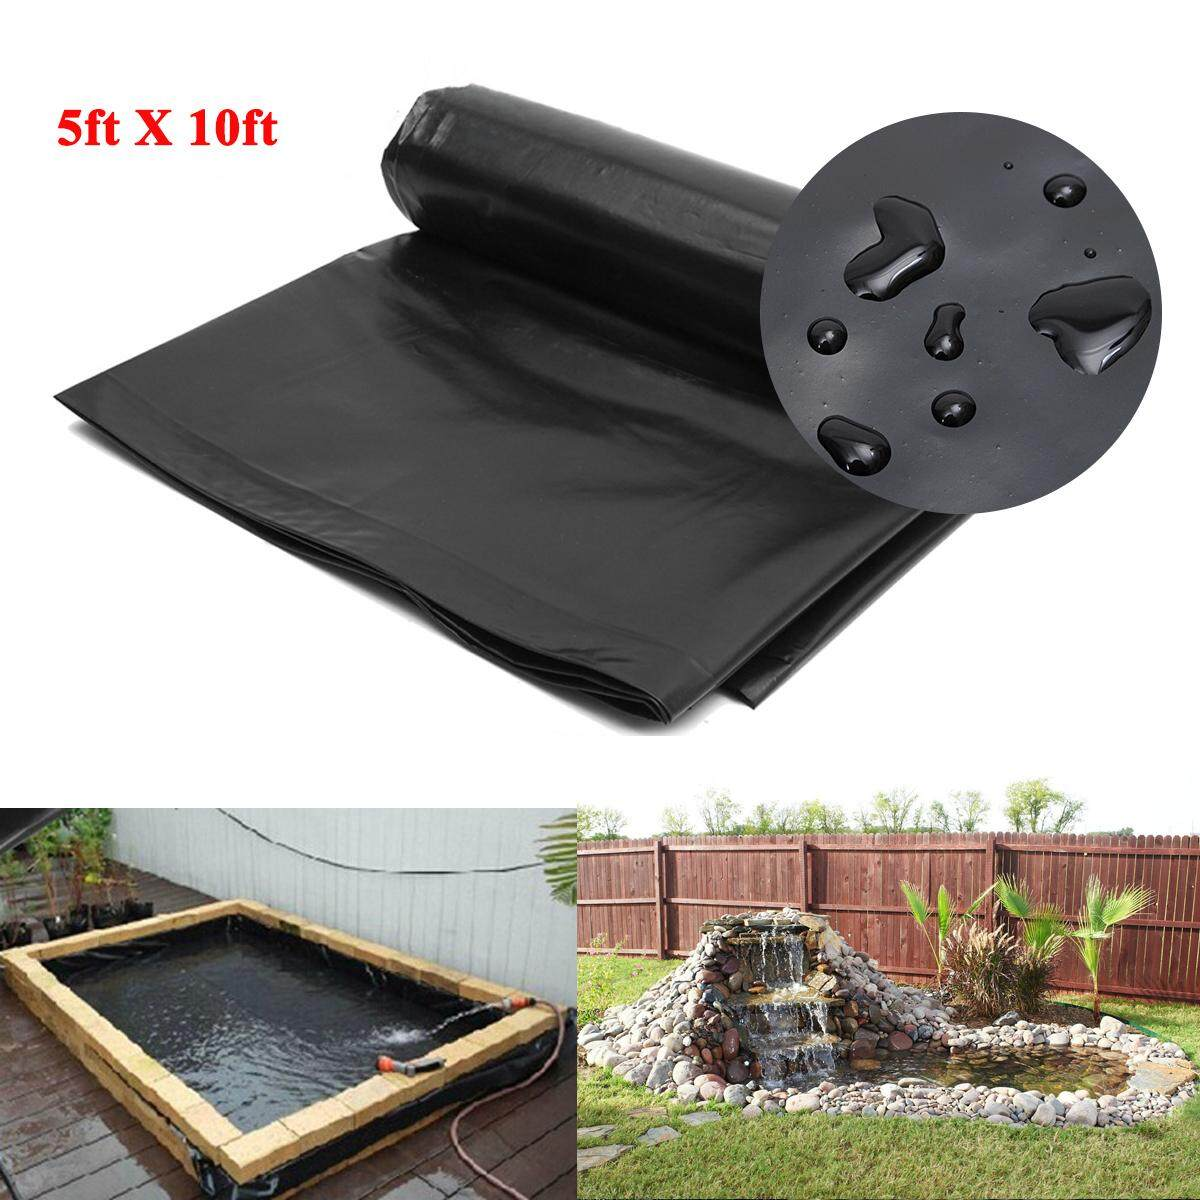 Unique Hdpe Pond Liner Heavy Duty Landscaping Garden Waterproof Linercloth Home Ponds Water Features Buy Home Ponds Water Features At Home Depot Pond Liner Canada Home Depot Pond Liner Tape houzz-03 Home Depot Pond Liner